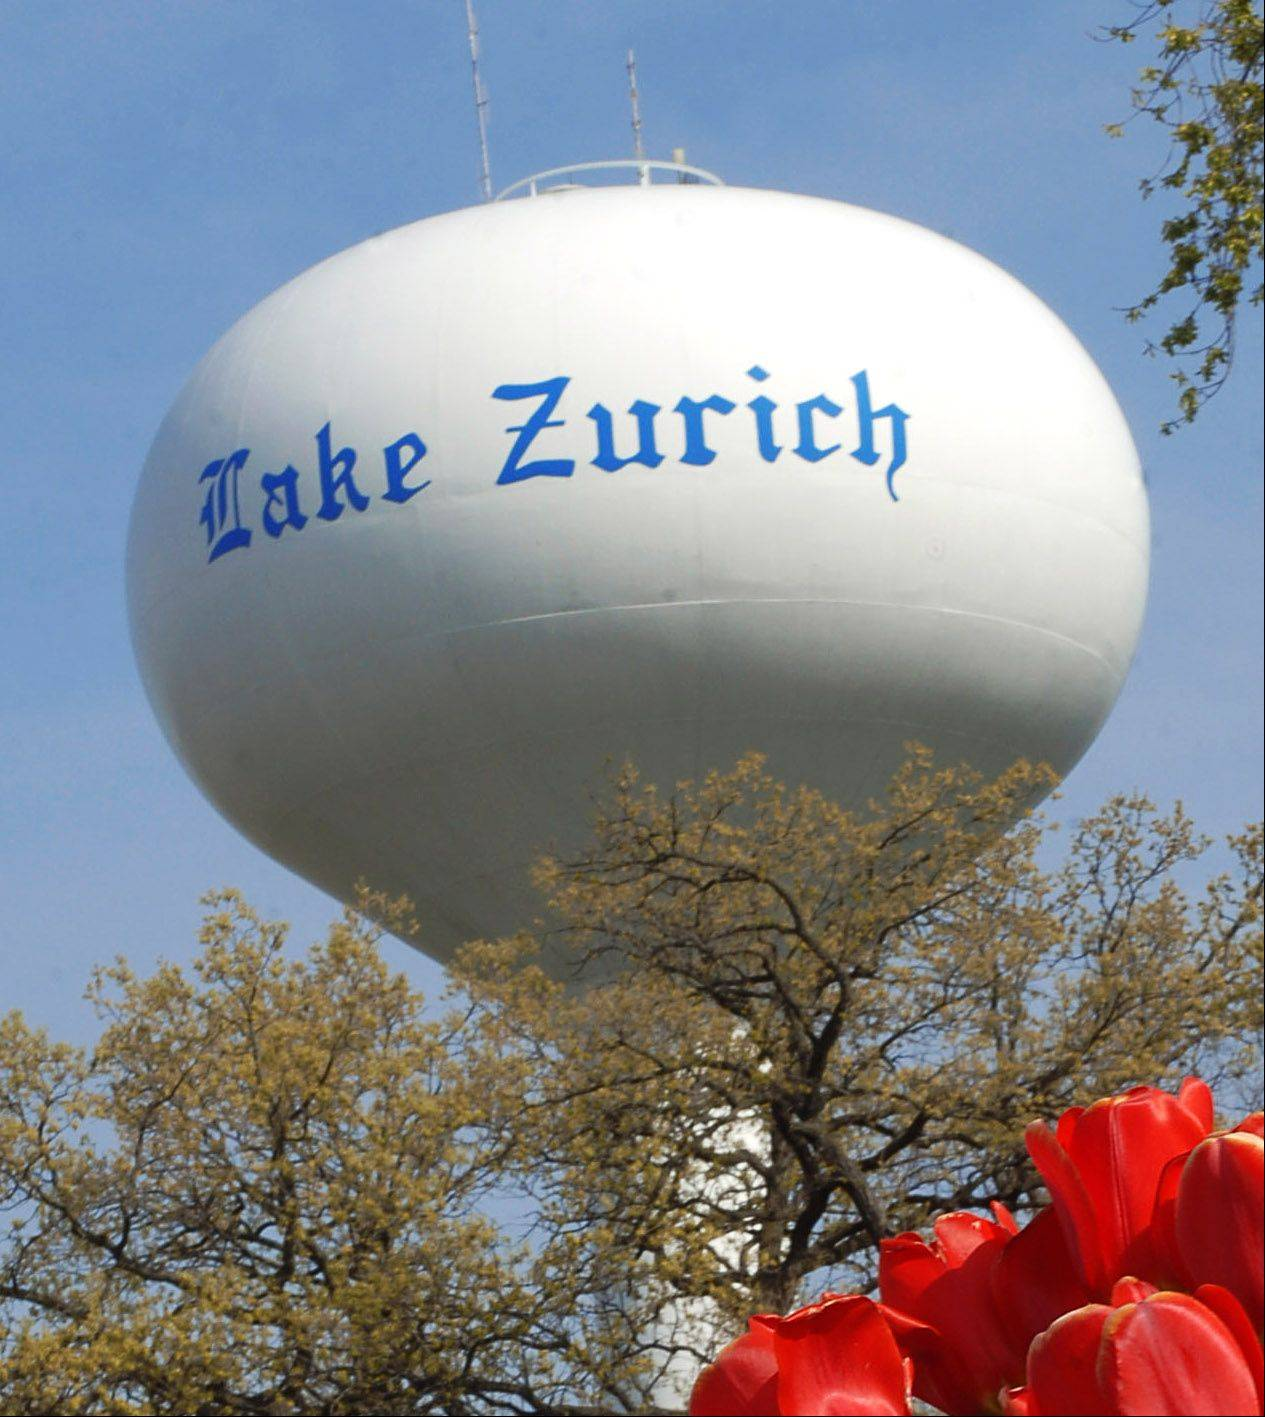 Lake Zurich residents currently get their drinking water from deep wells, but village officials are considering a ballot measure next year asking voters whether they would support issuing $43 million in bonds to pay for a pipeline running Lake Michigan water to the town. The other option, officials say, is $16.5 million in upgrades to the current water system.